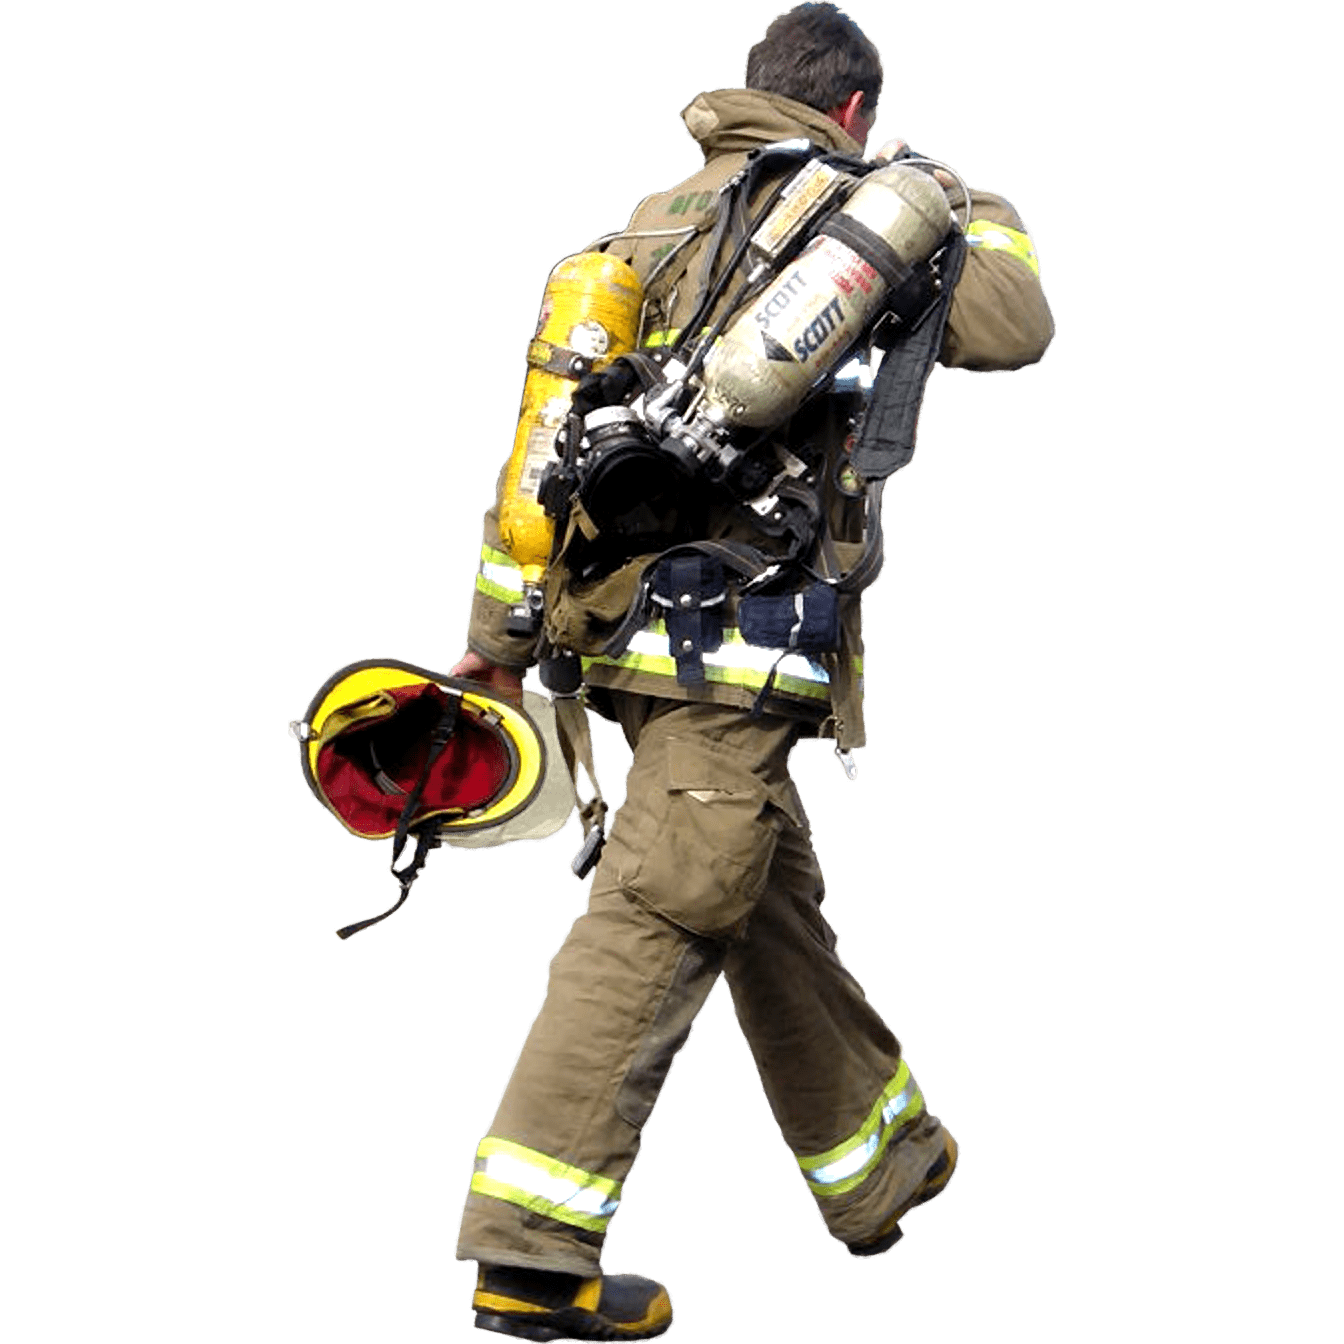 Firefighter walking transparent png. Voting clipart person